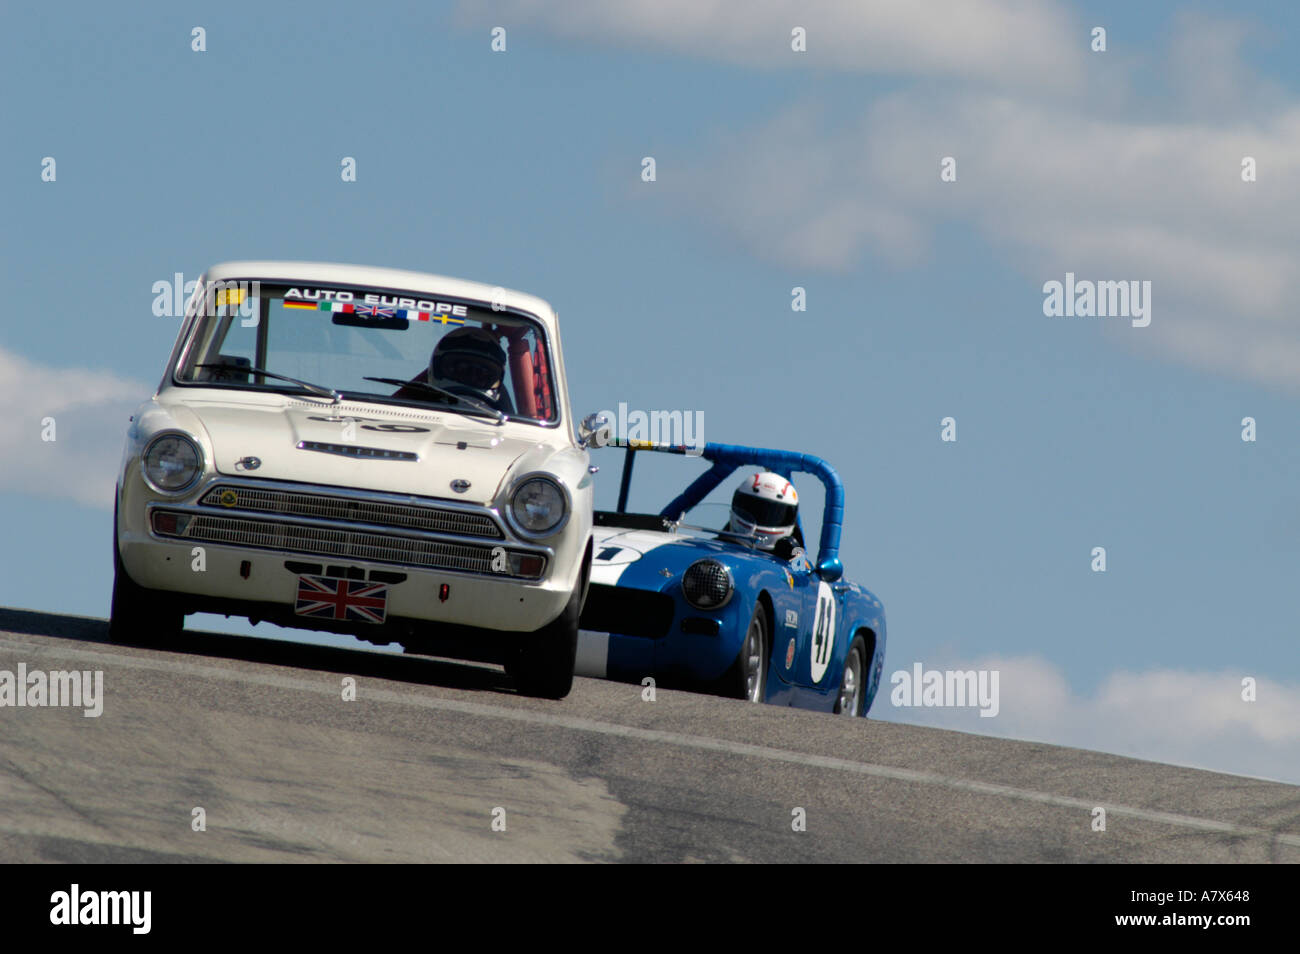 Don Heth in his 1966 Cortina Lotus followed by Ken Holley in his 1965 Sprite at the Vintage Grand Prix Au Grattan Stock Photo